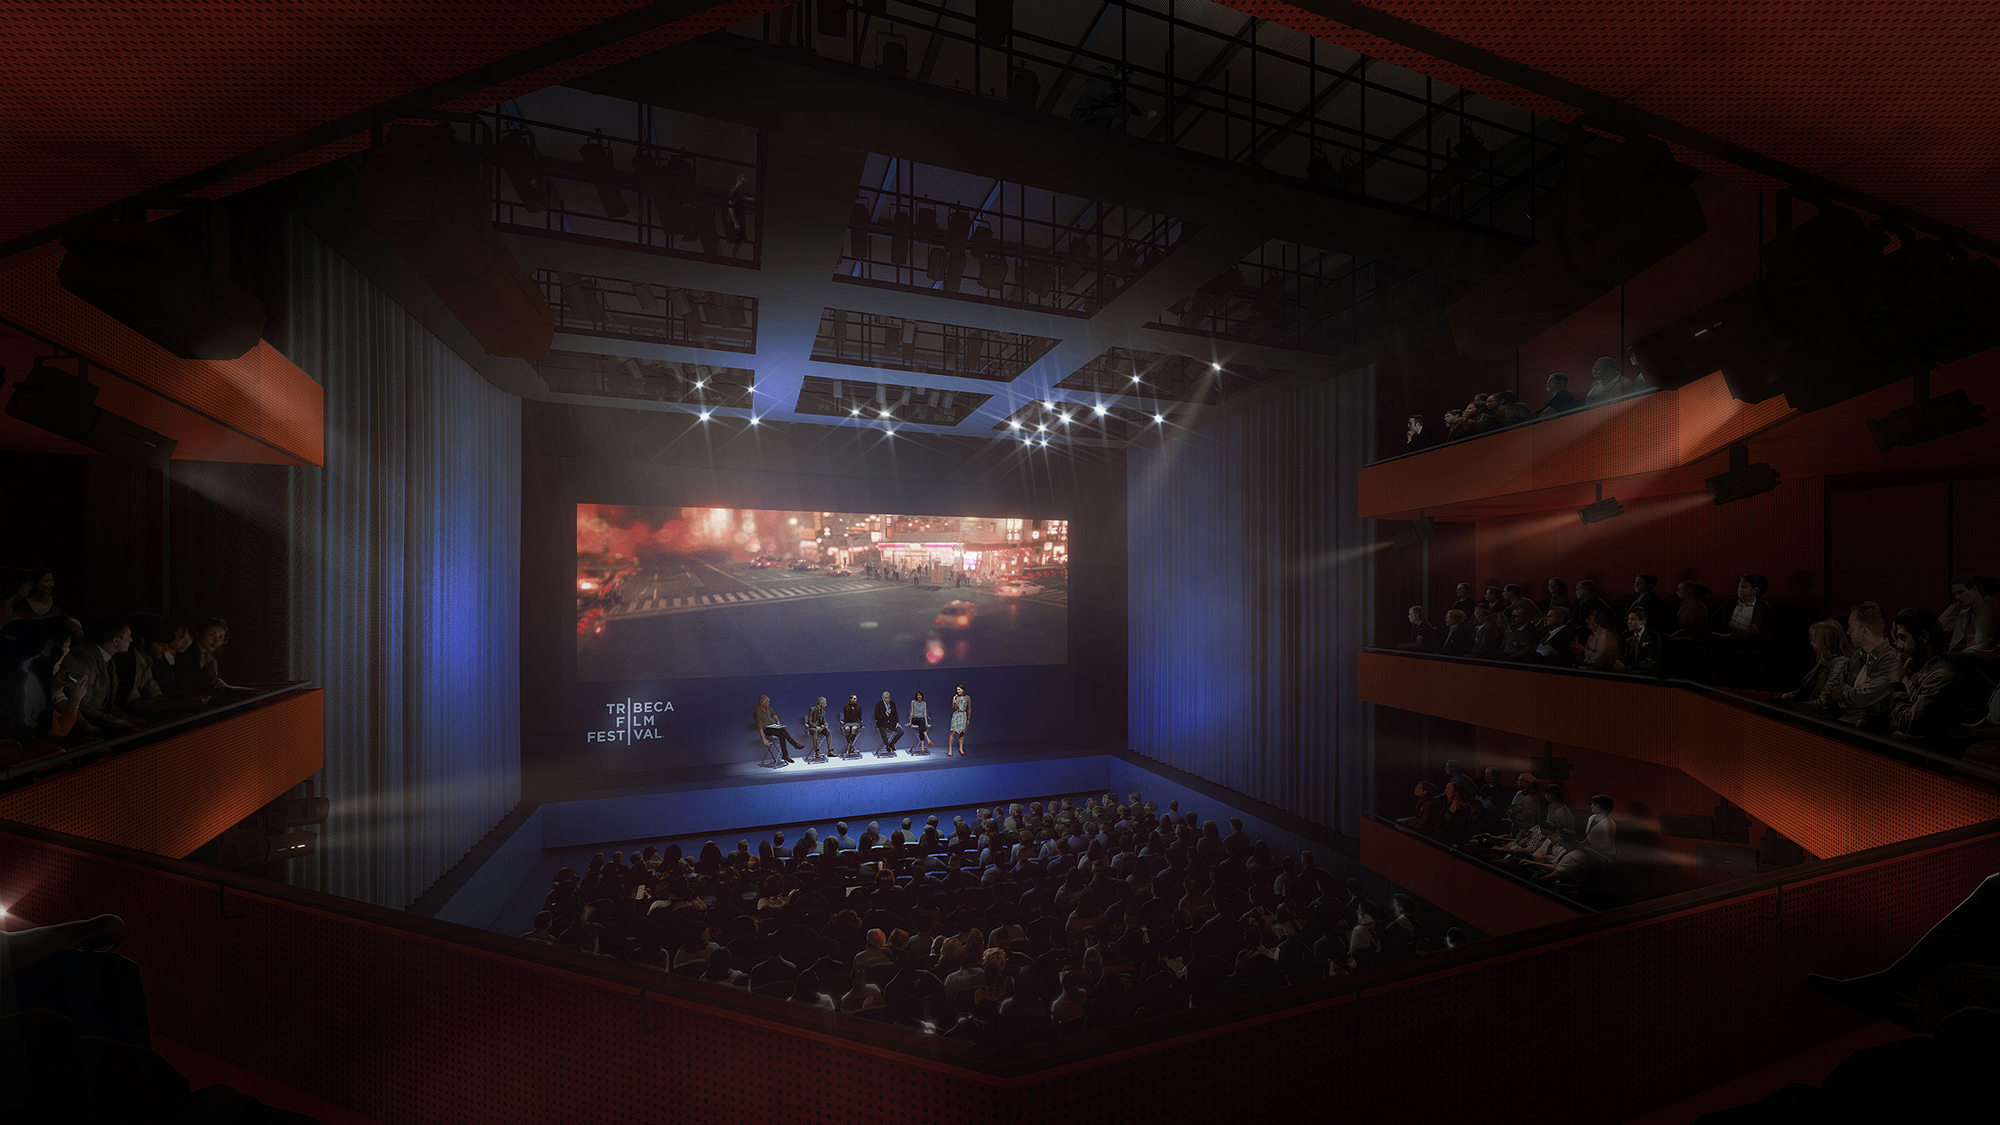 Rendering of Ronald O. Perelman Performing Arts Center at the World Trade Center for a film screening. Rendering by LUXIGON